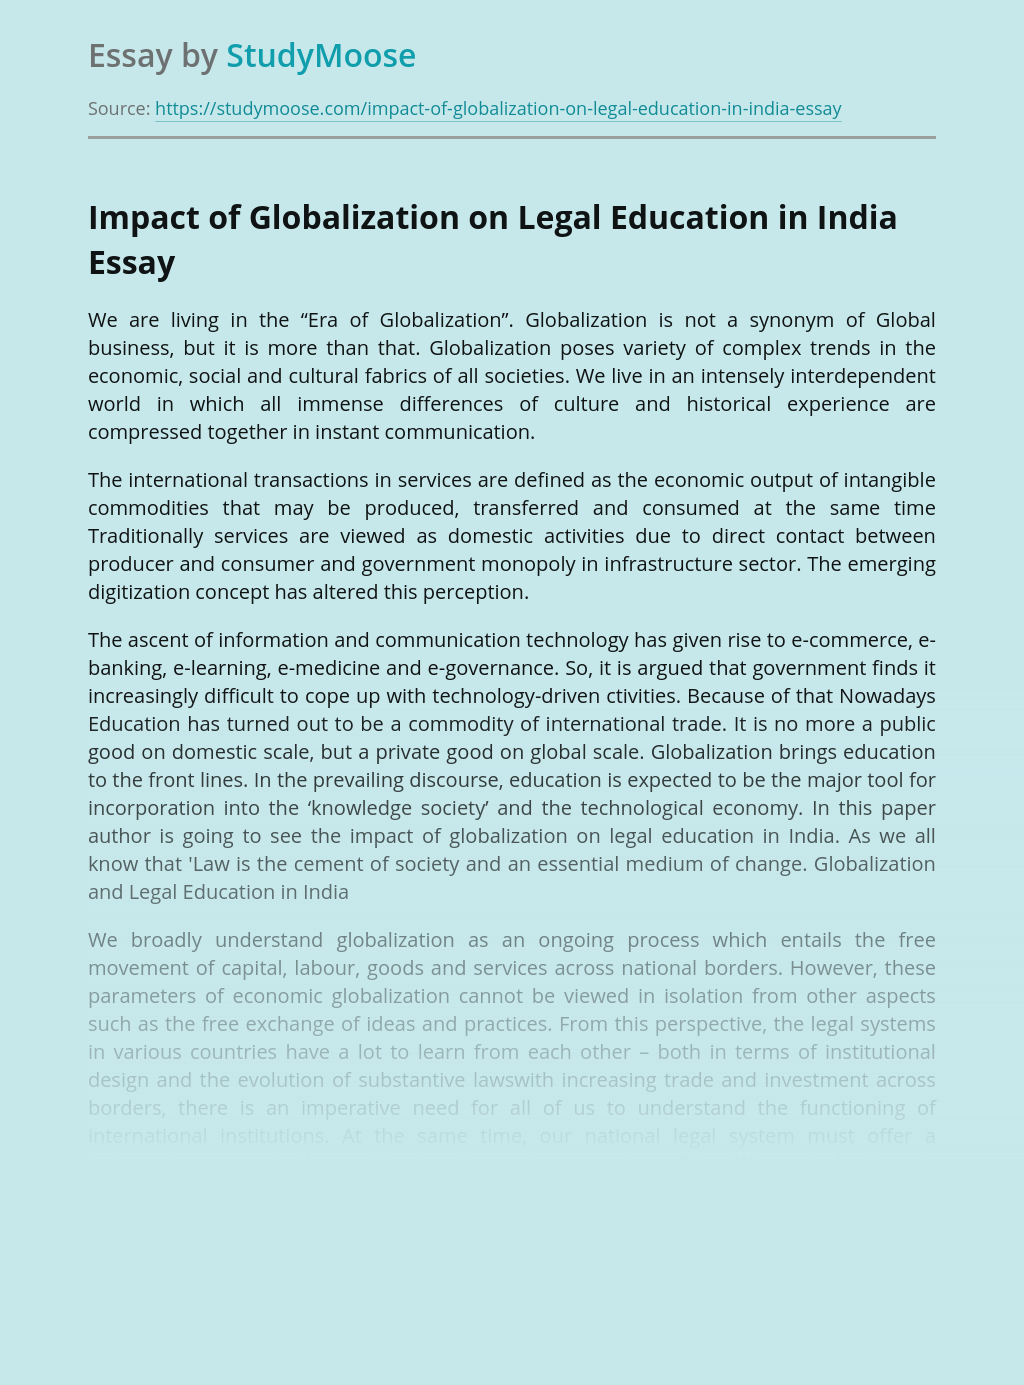 Impact of Globalization on Legal Education in India